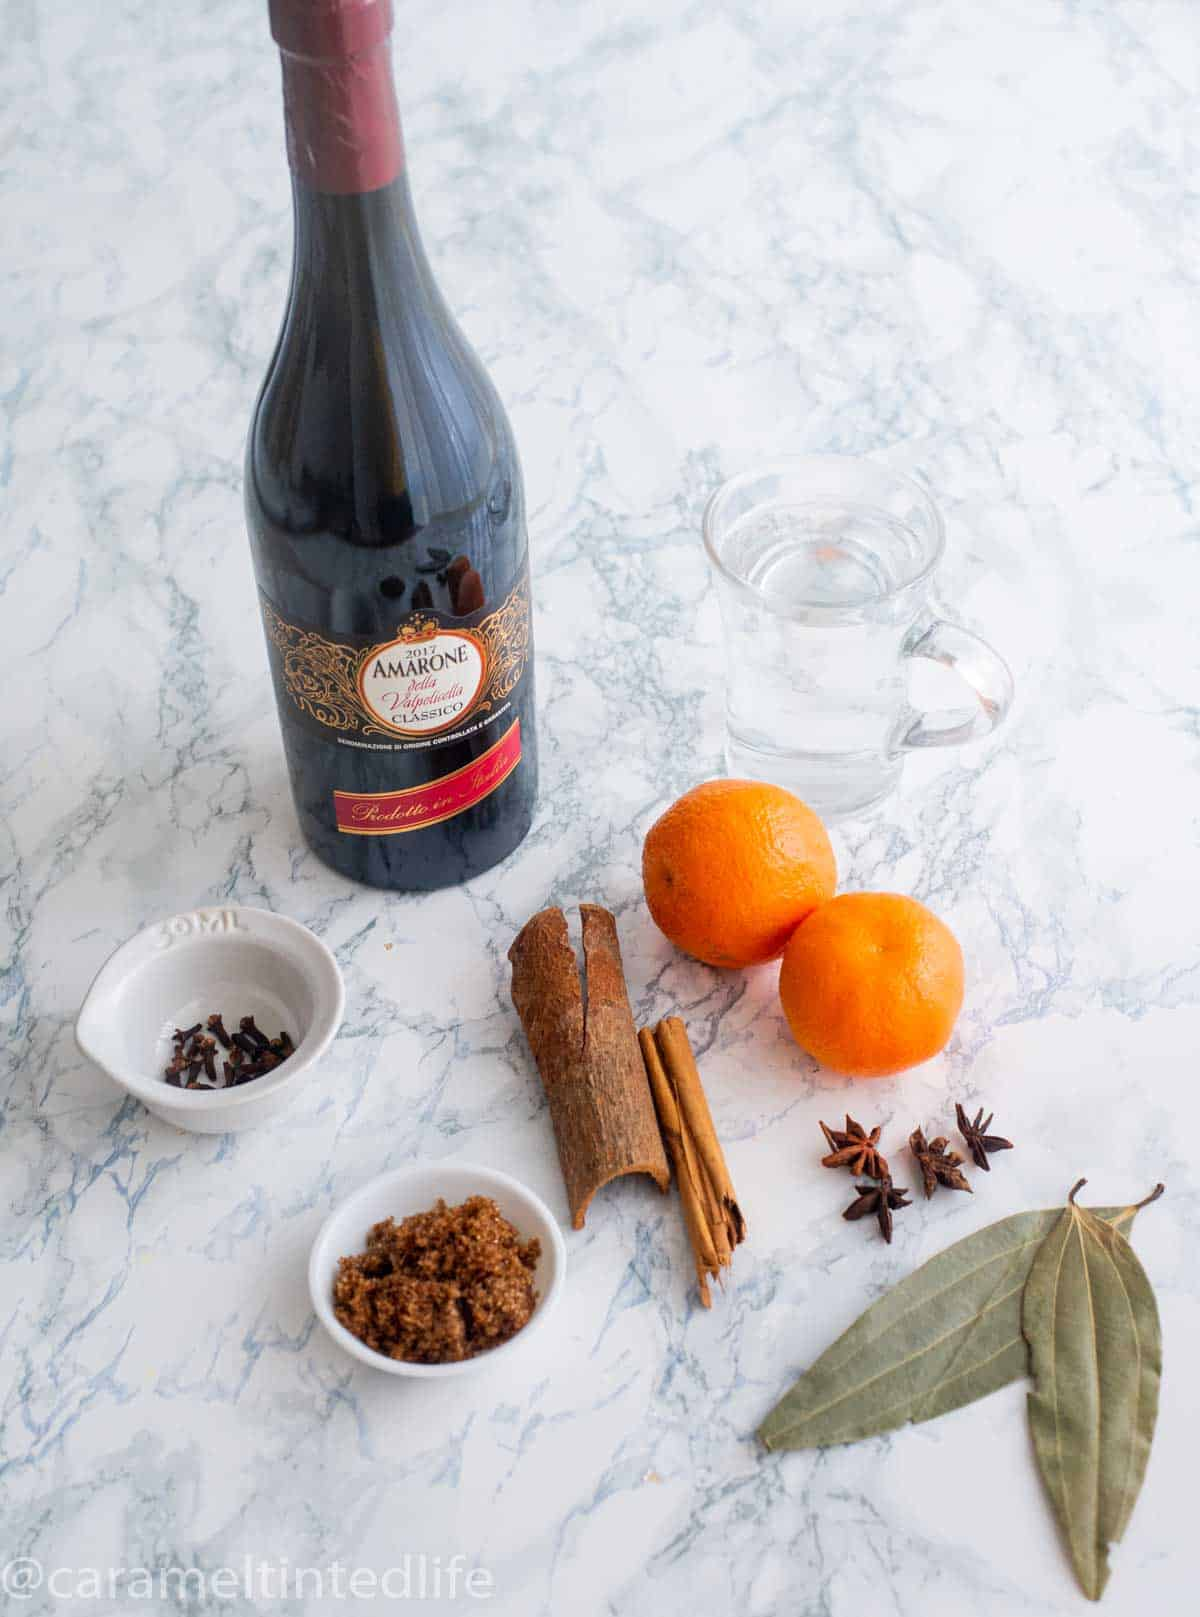 Ingredients used to make mulled wine, on a white surface